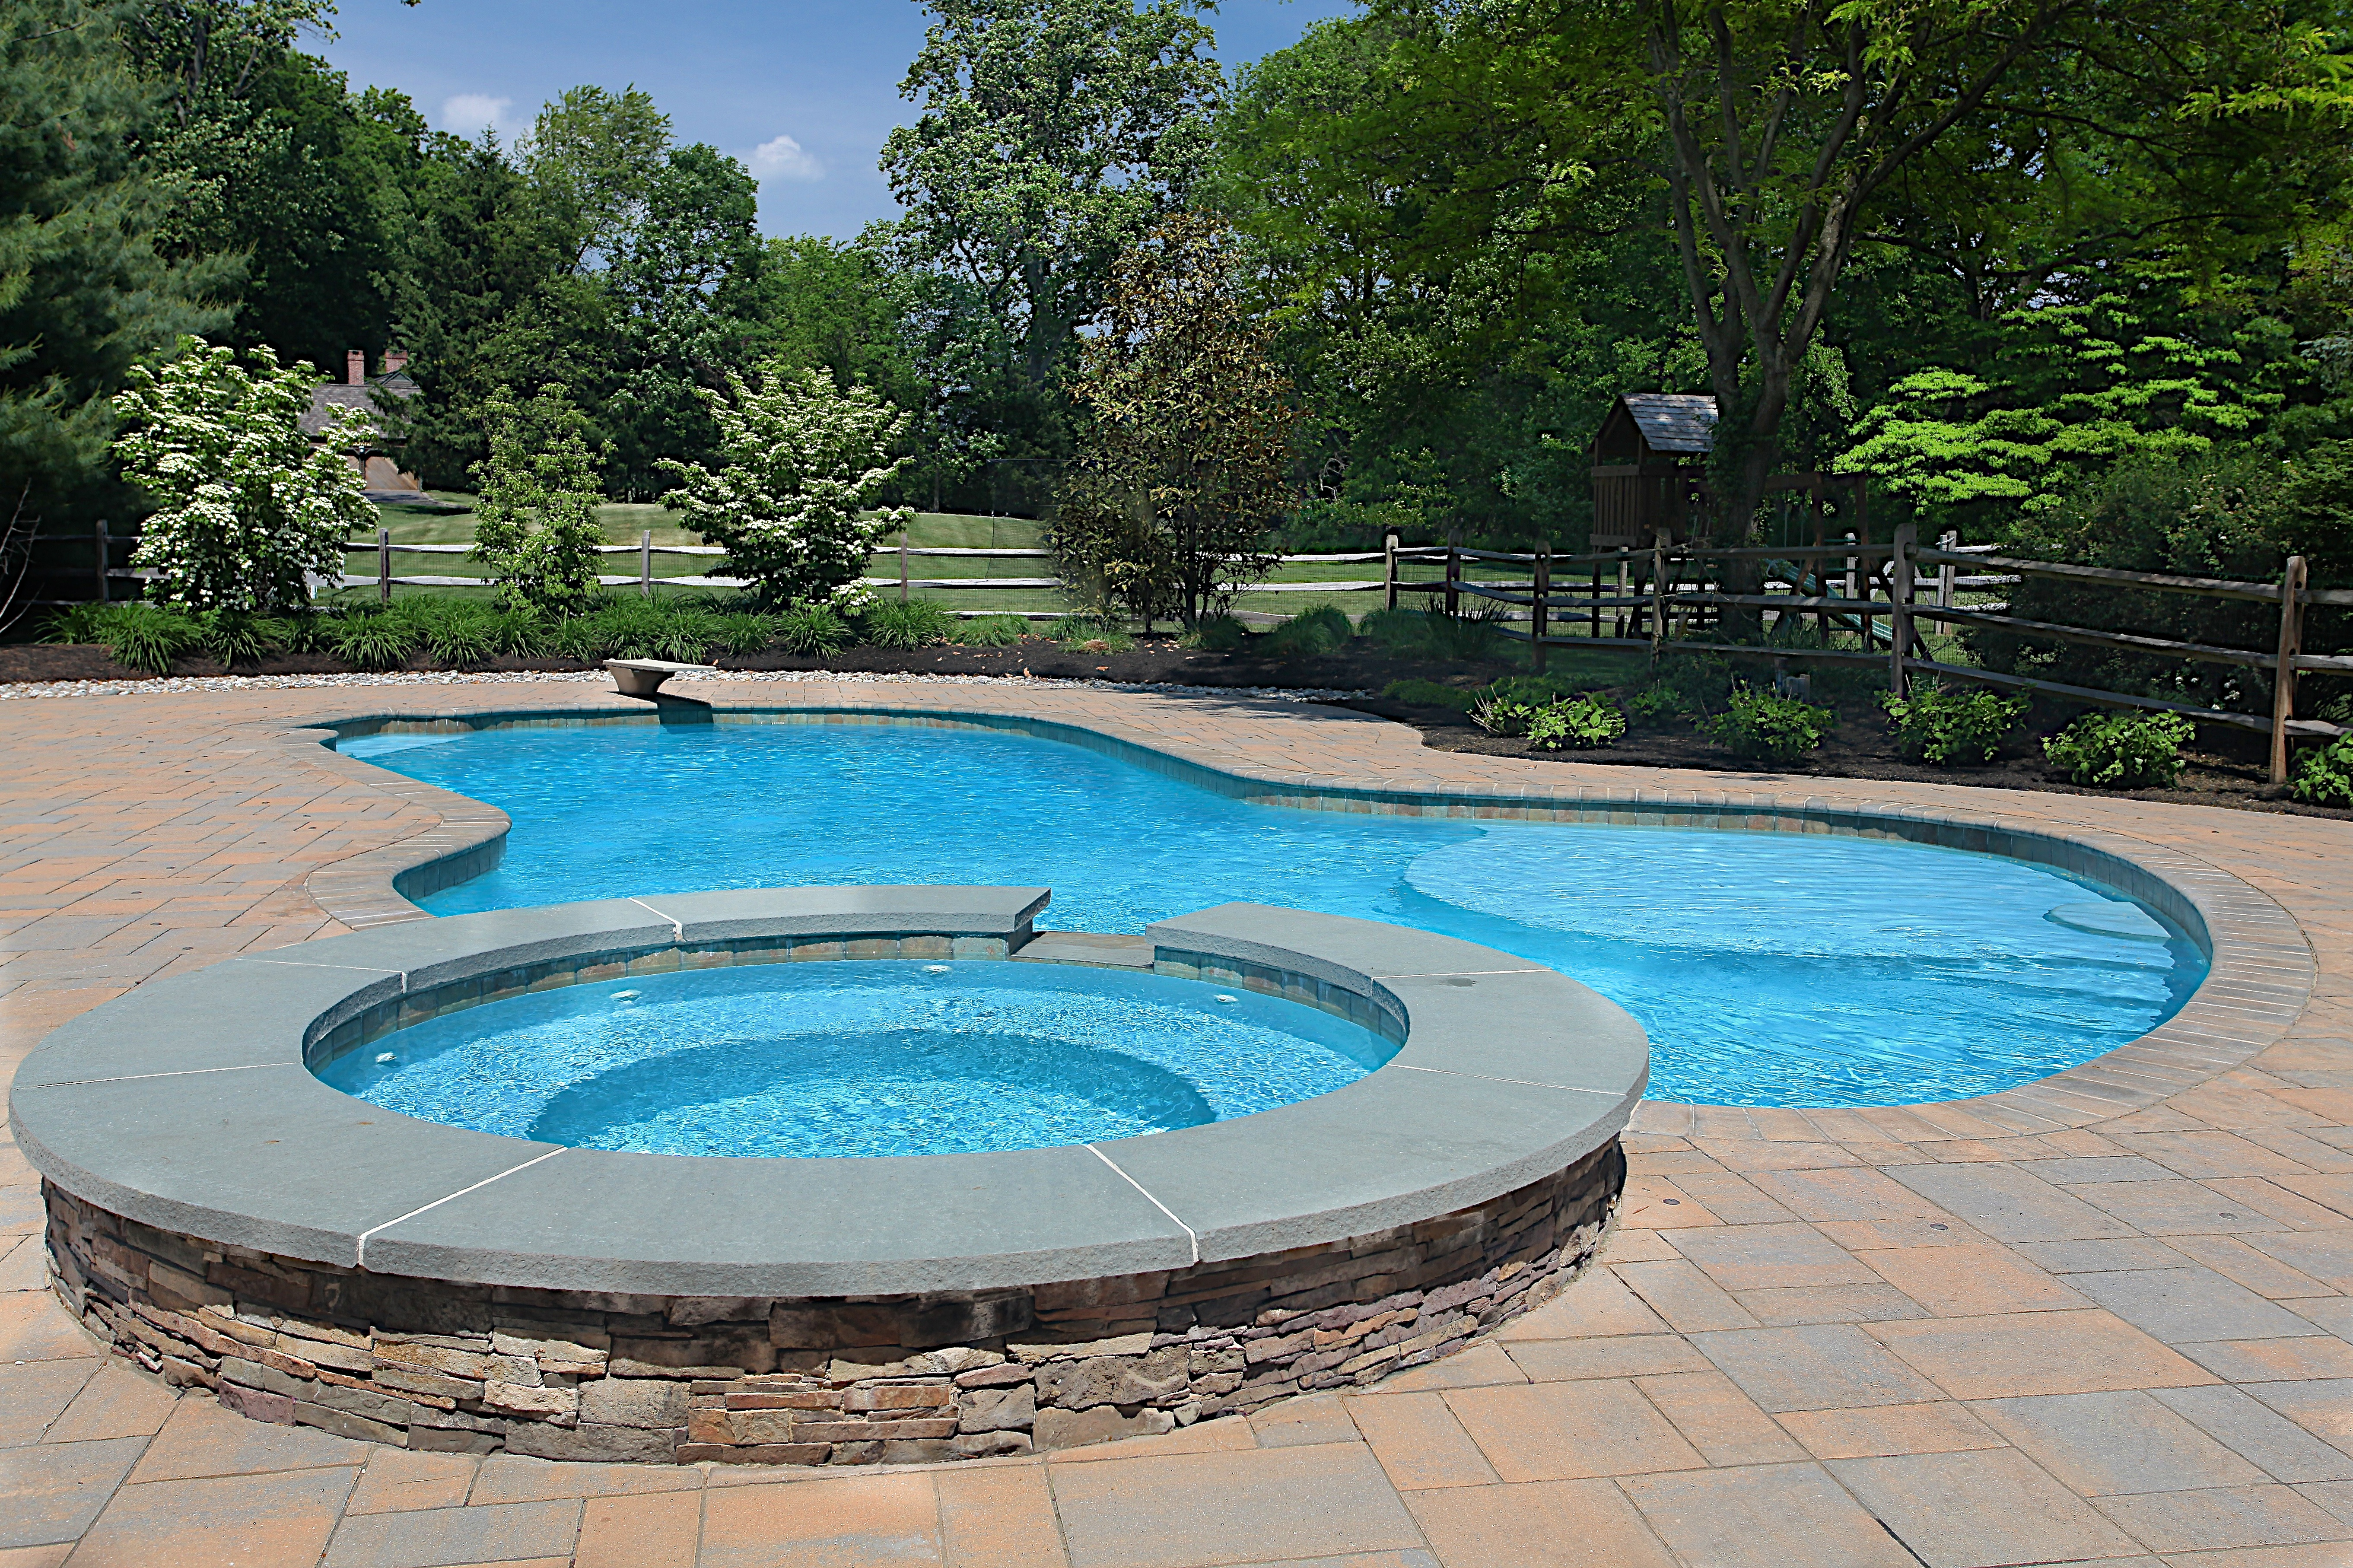 Salt Water Pool Designs small pool or plunge pool in an urban backyard in dallas texas designed by bonick Salt Water Pools Greenview Designs Llc House Home Magazine